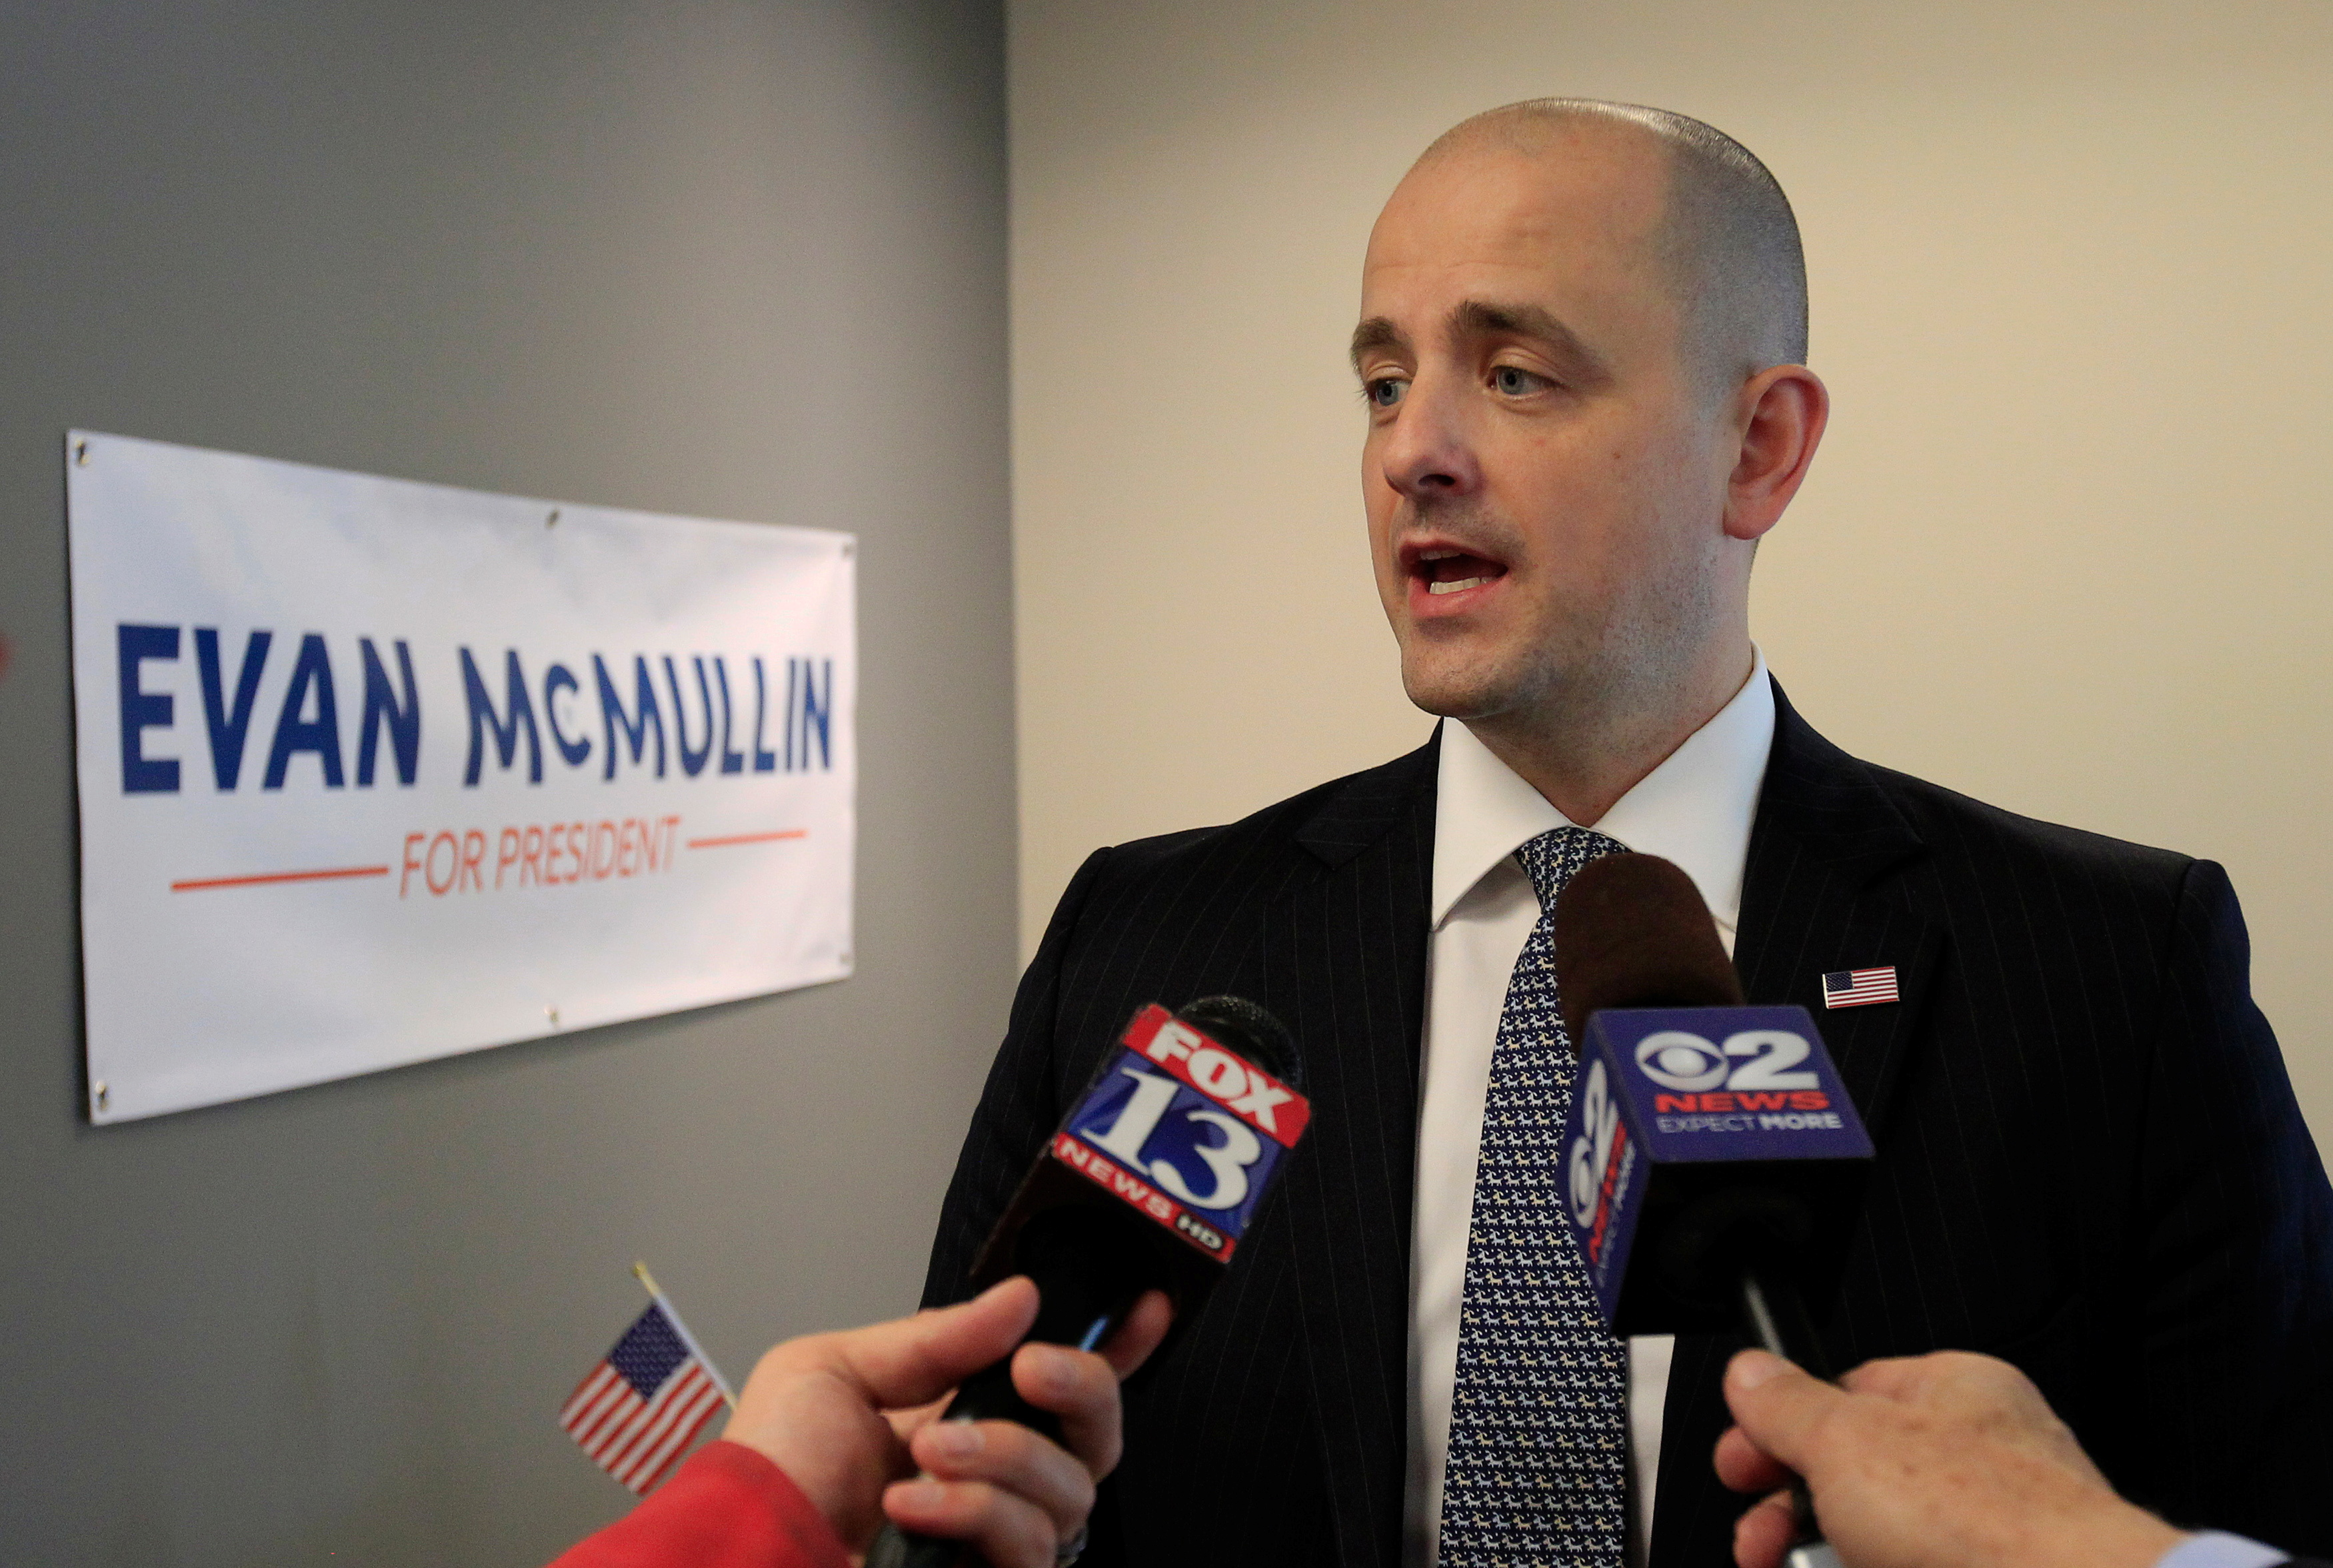 Third party candidate Evan McMullin, an independent, talks to the press as he campaigns in Salt Lake City, Utah, October 12, 2016.  REUTERS/George Frey/File Photo